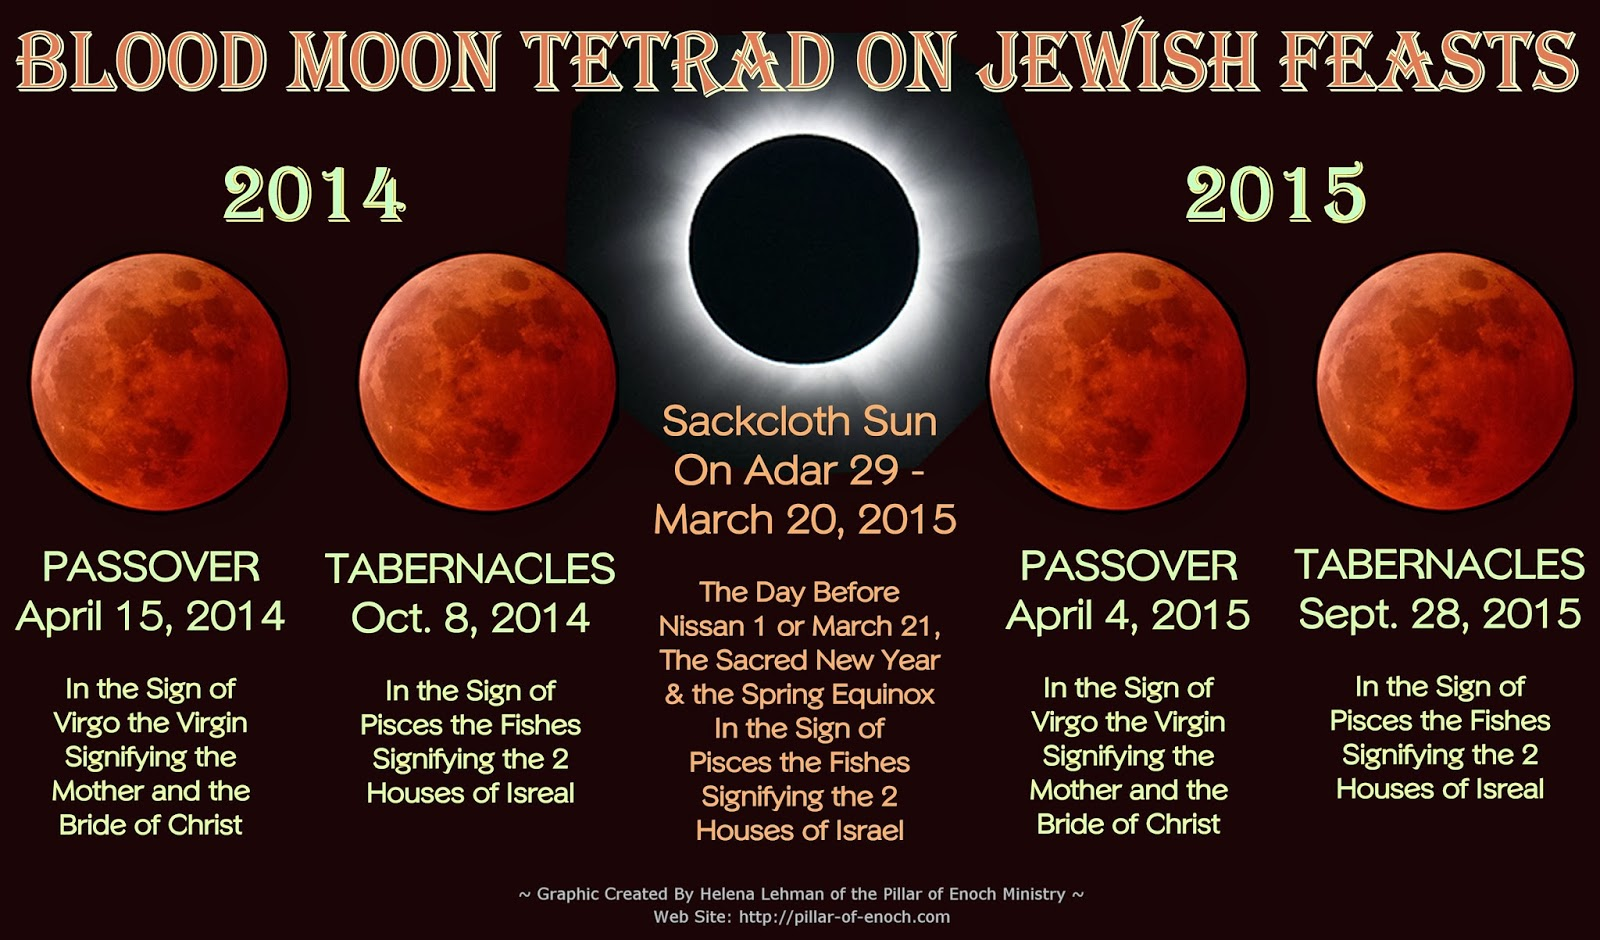 Pillar of Enoch Ministry Blog: The Blood Moon Tetrad of 2014 and 2015